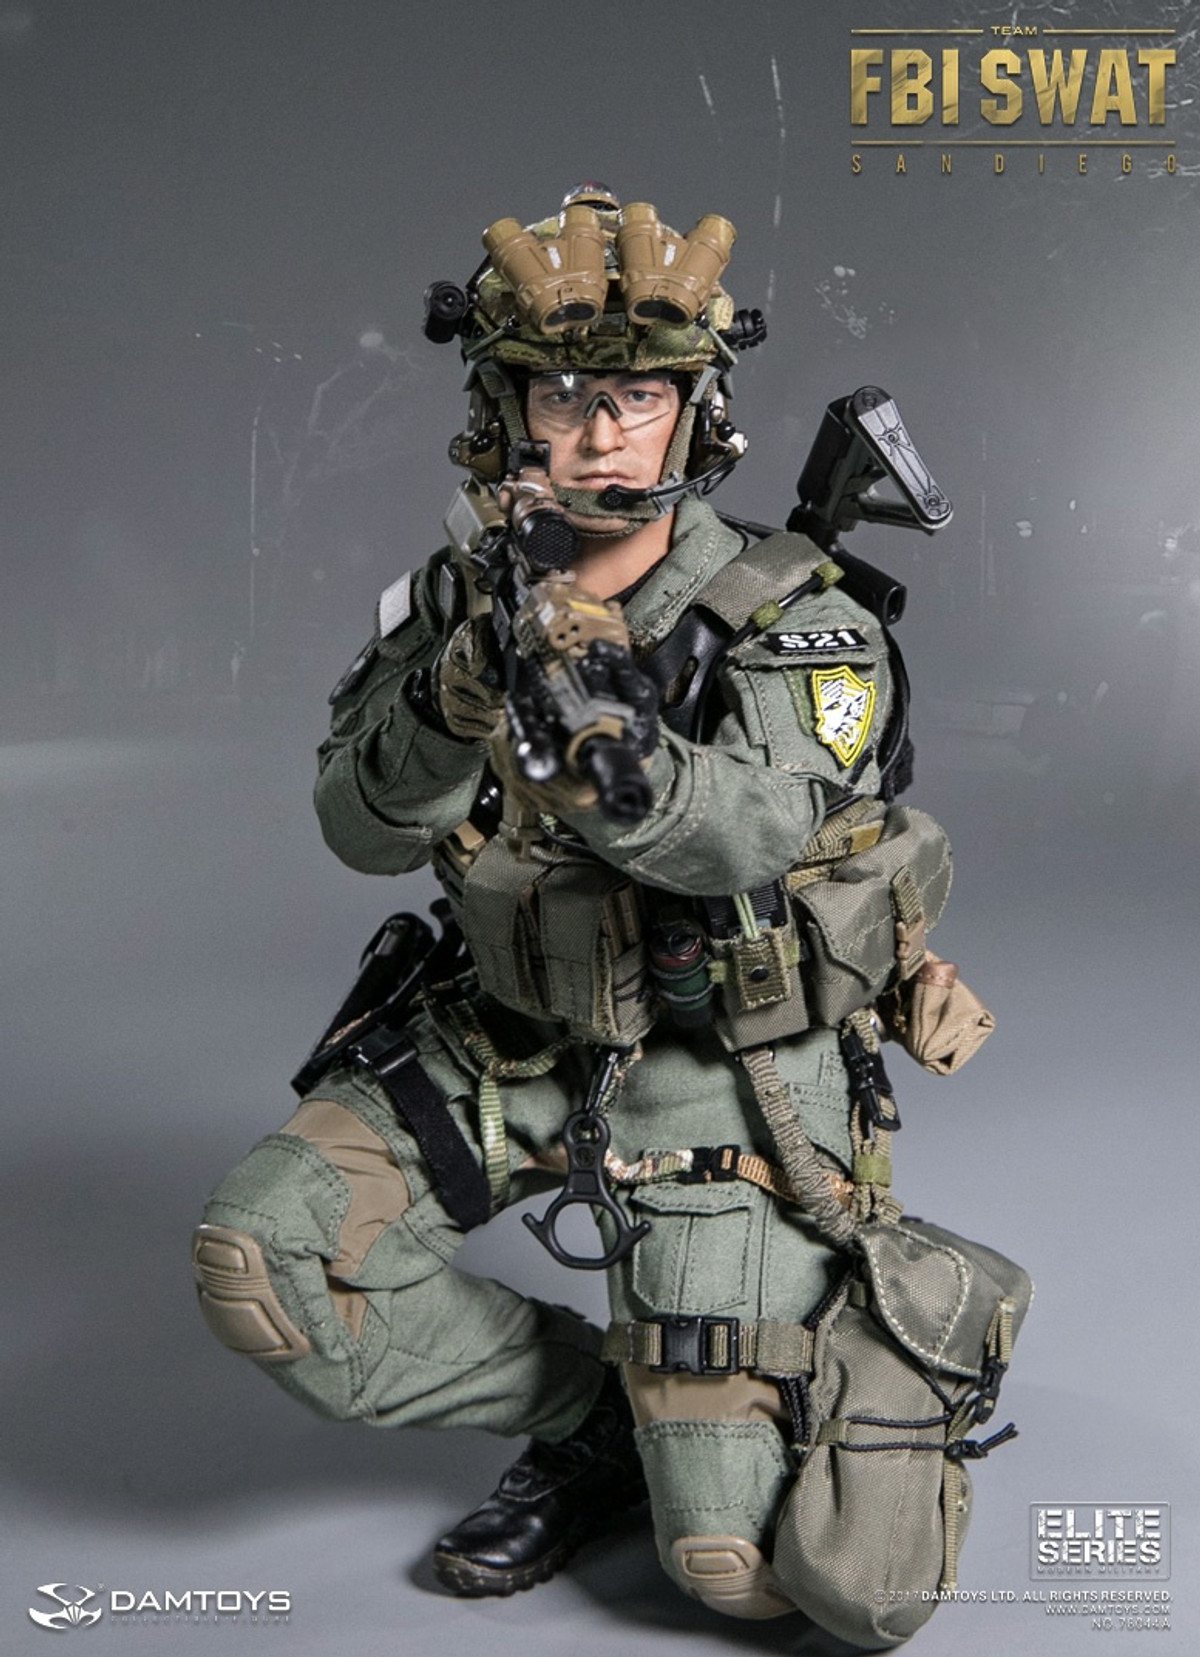 1//6 Scale-Damtoys Action Figures San Diego Special Weapons and Tactics-Watch